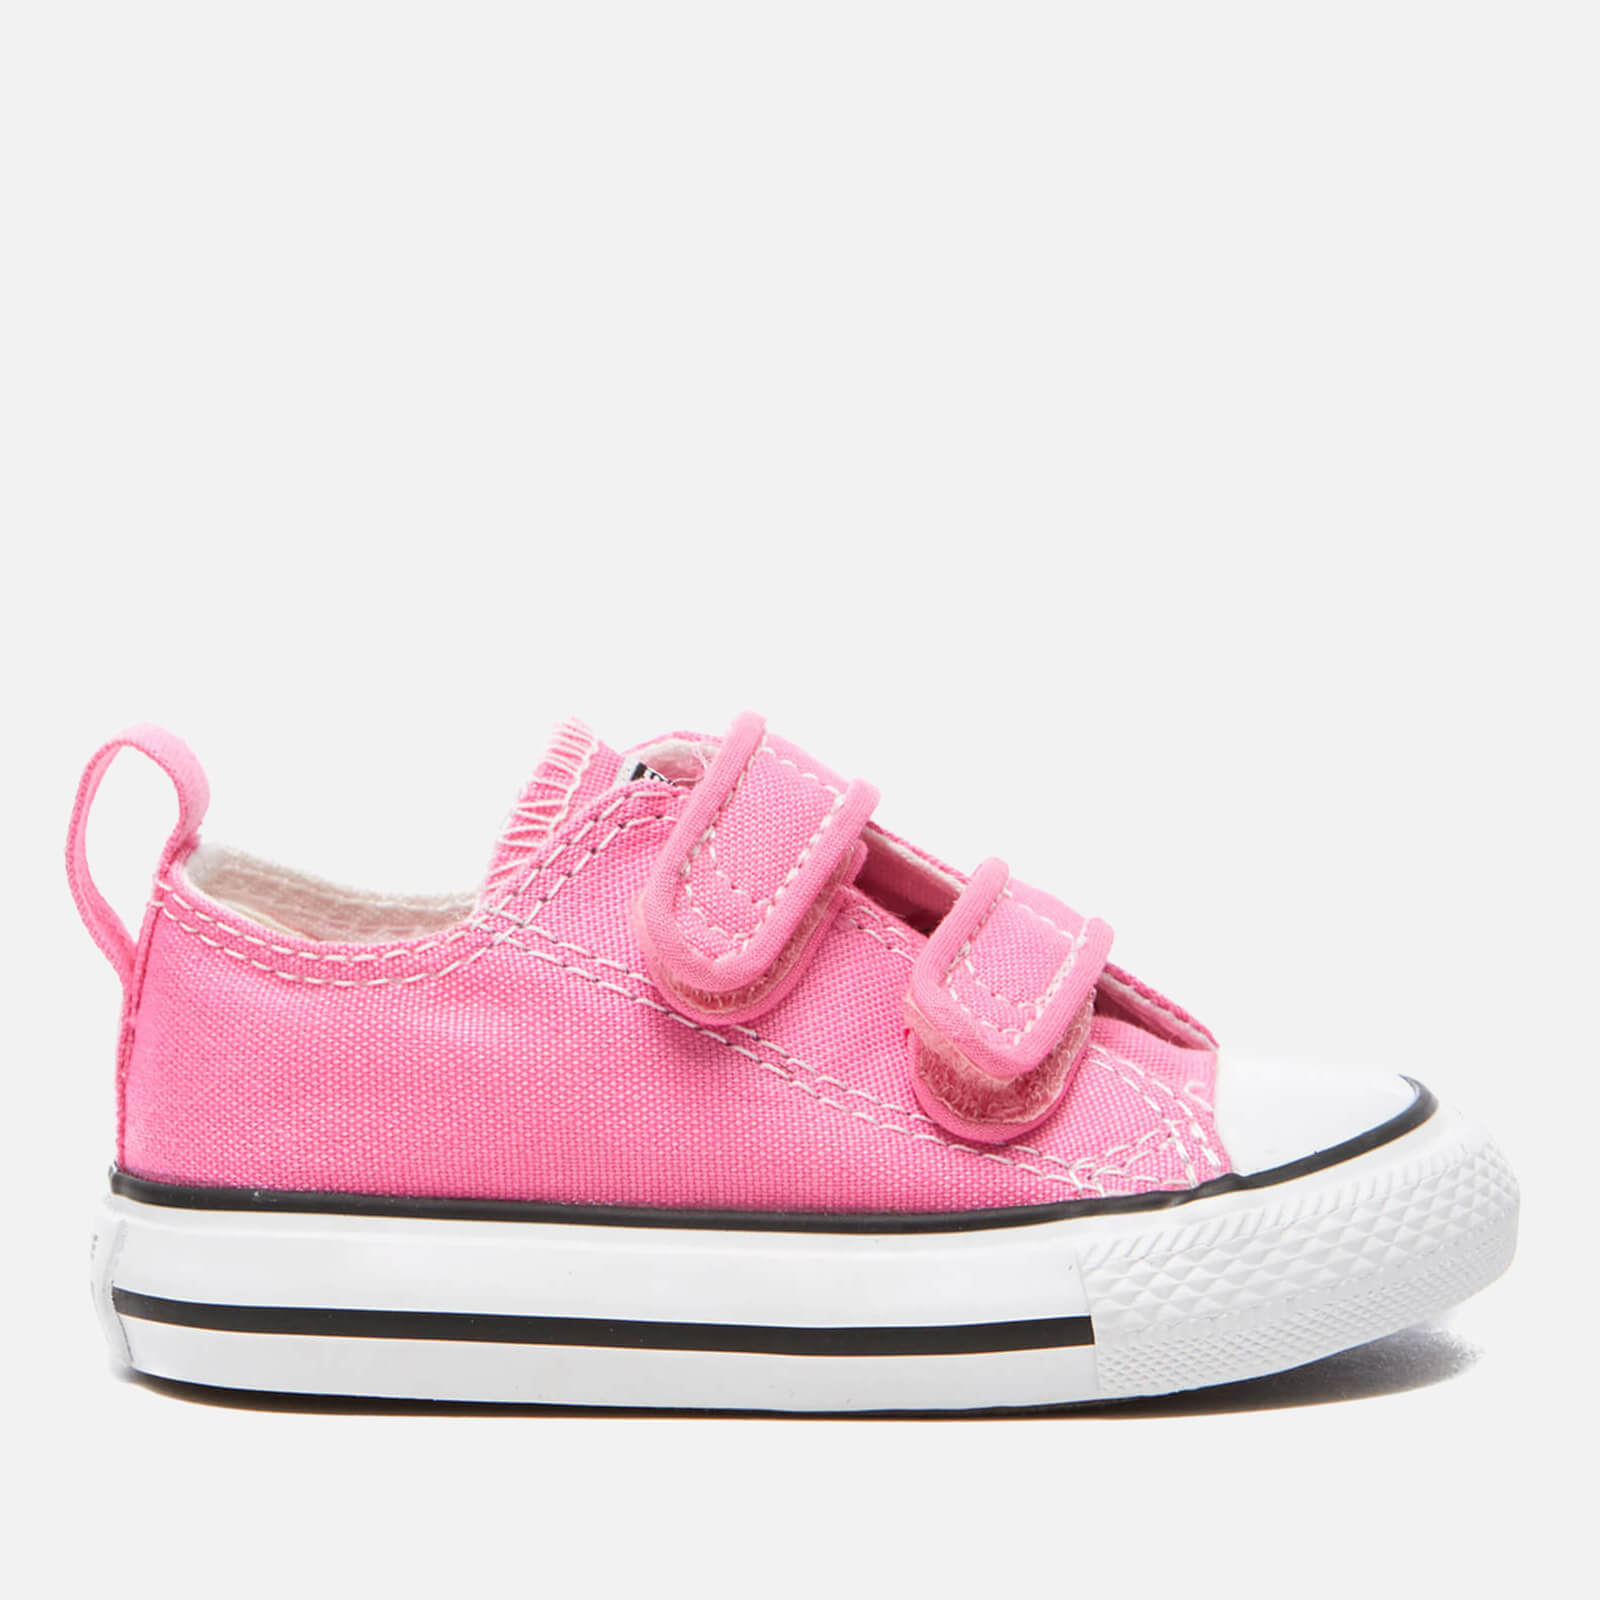 e9a9b2b6c Converse Toddlers' Chuck Taylor All Star V Trainers - Pink Champagne   FREE  UK Delivery   Allsole